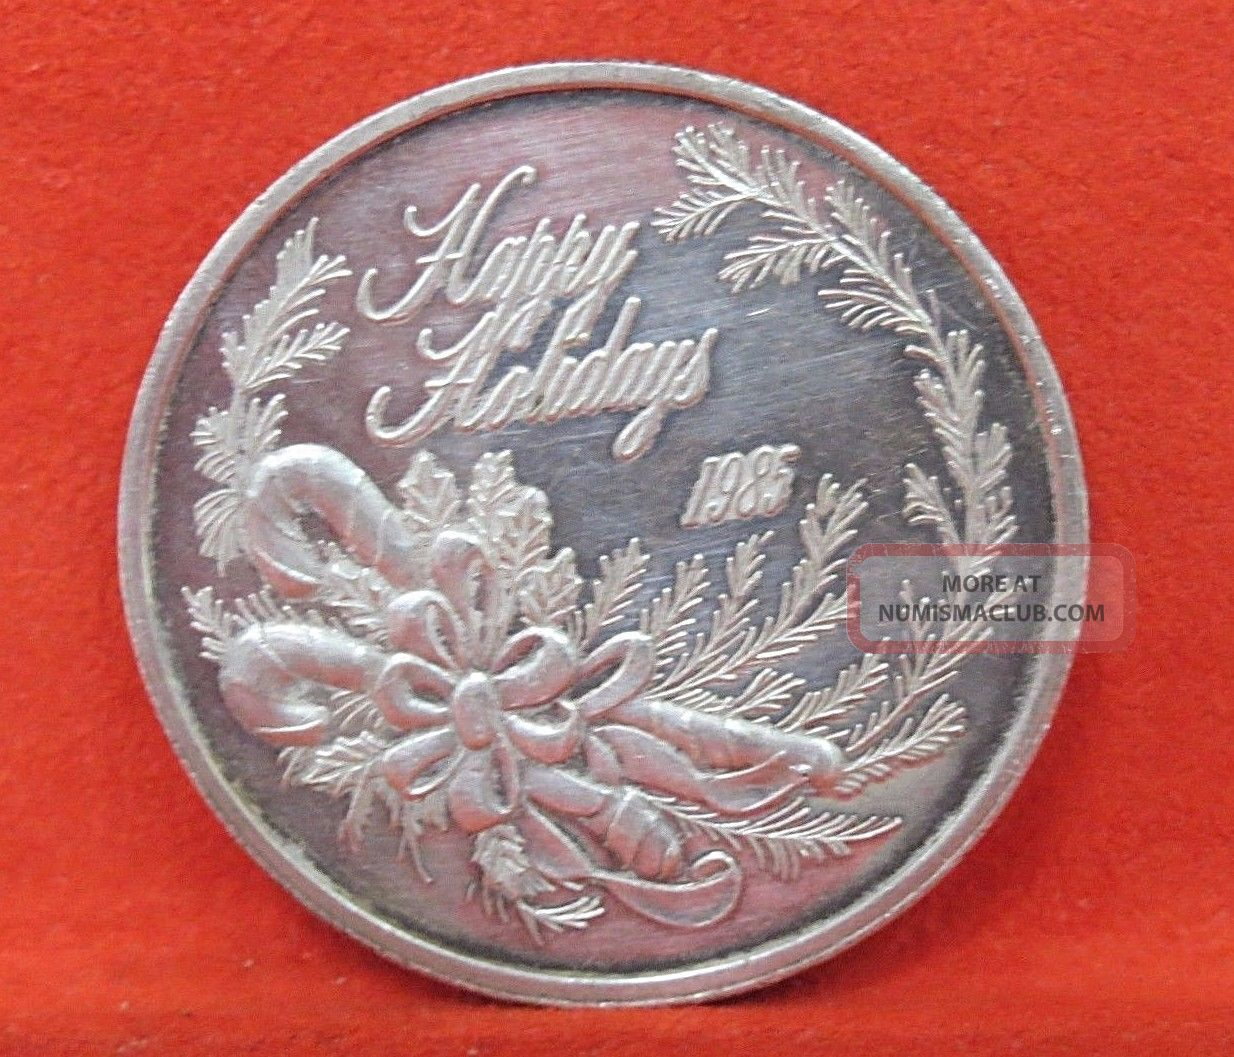 1985 Happy Holidays One Troy Ounce 999 Fine Silver 1oz